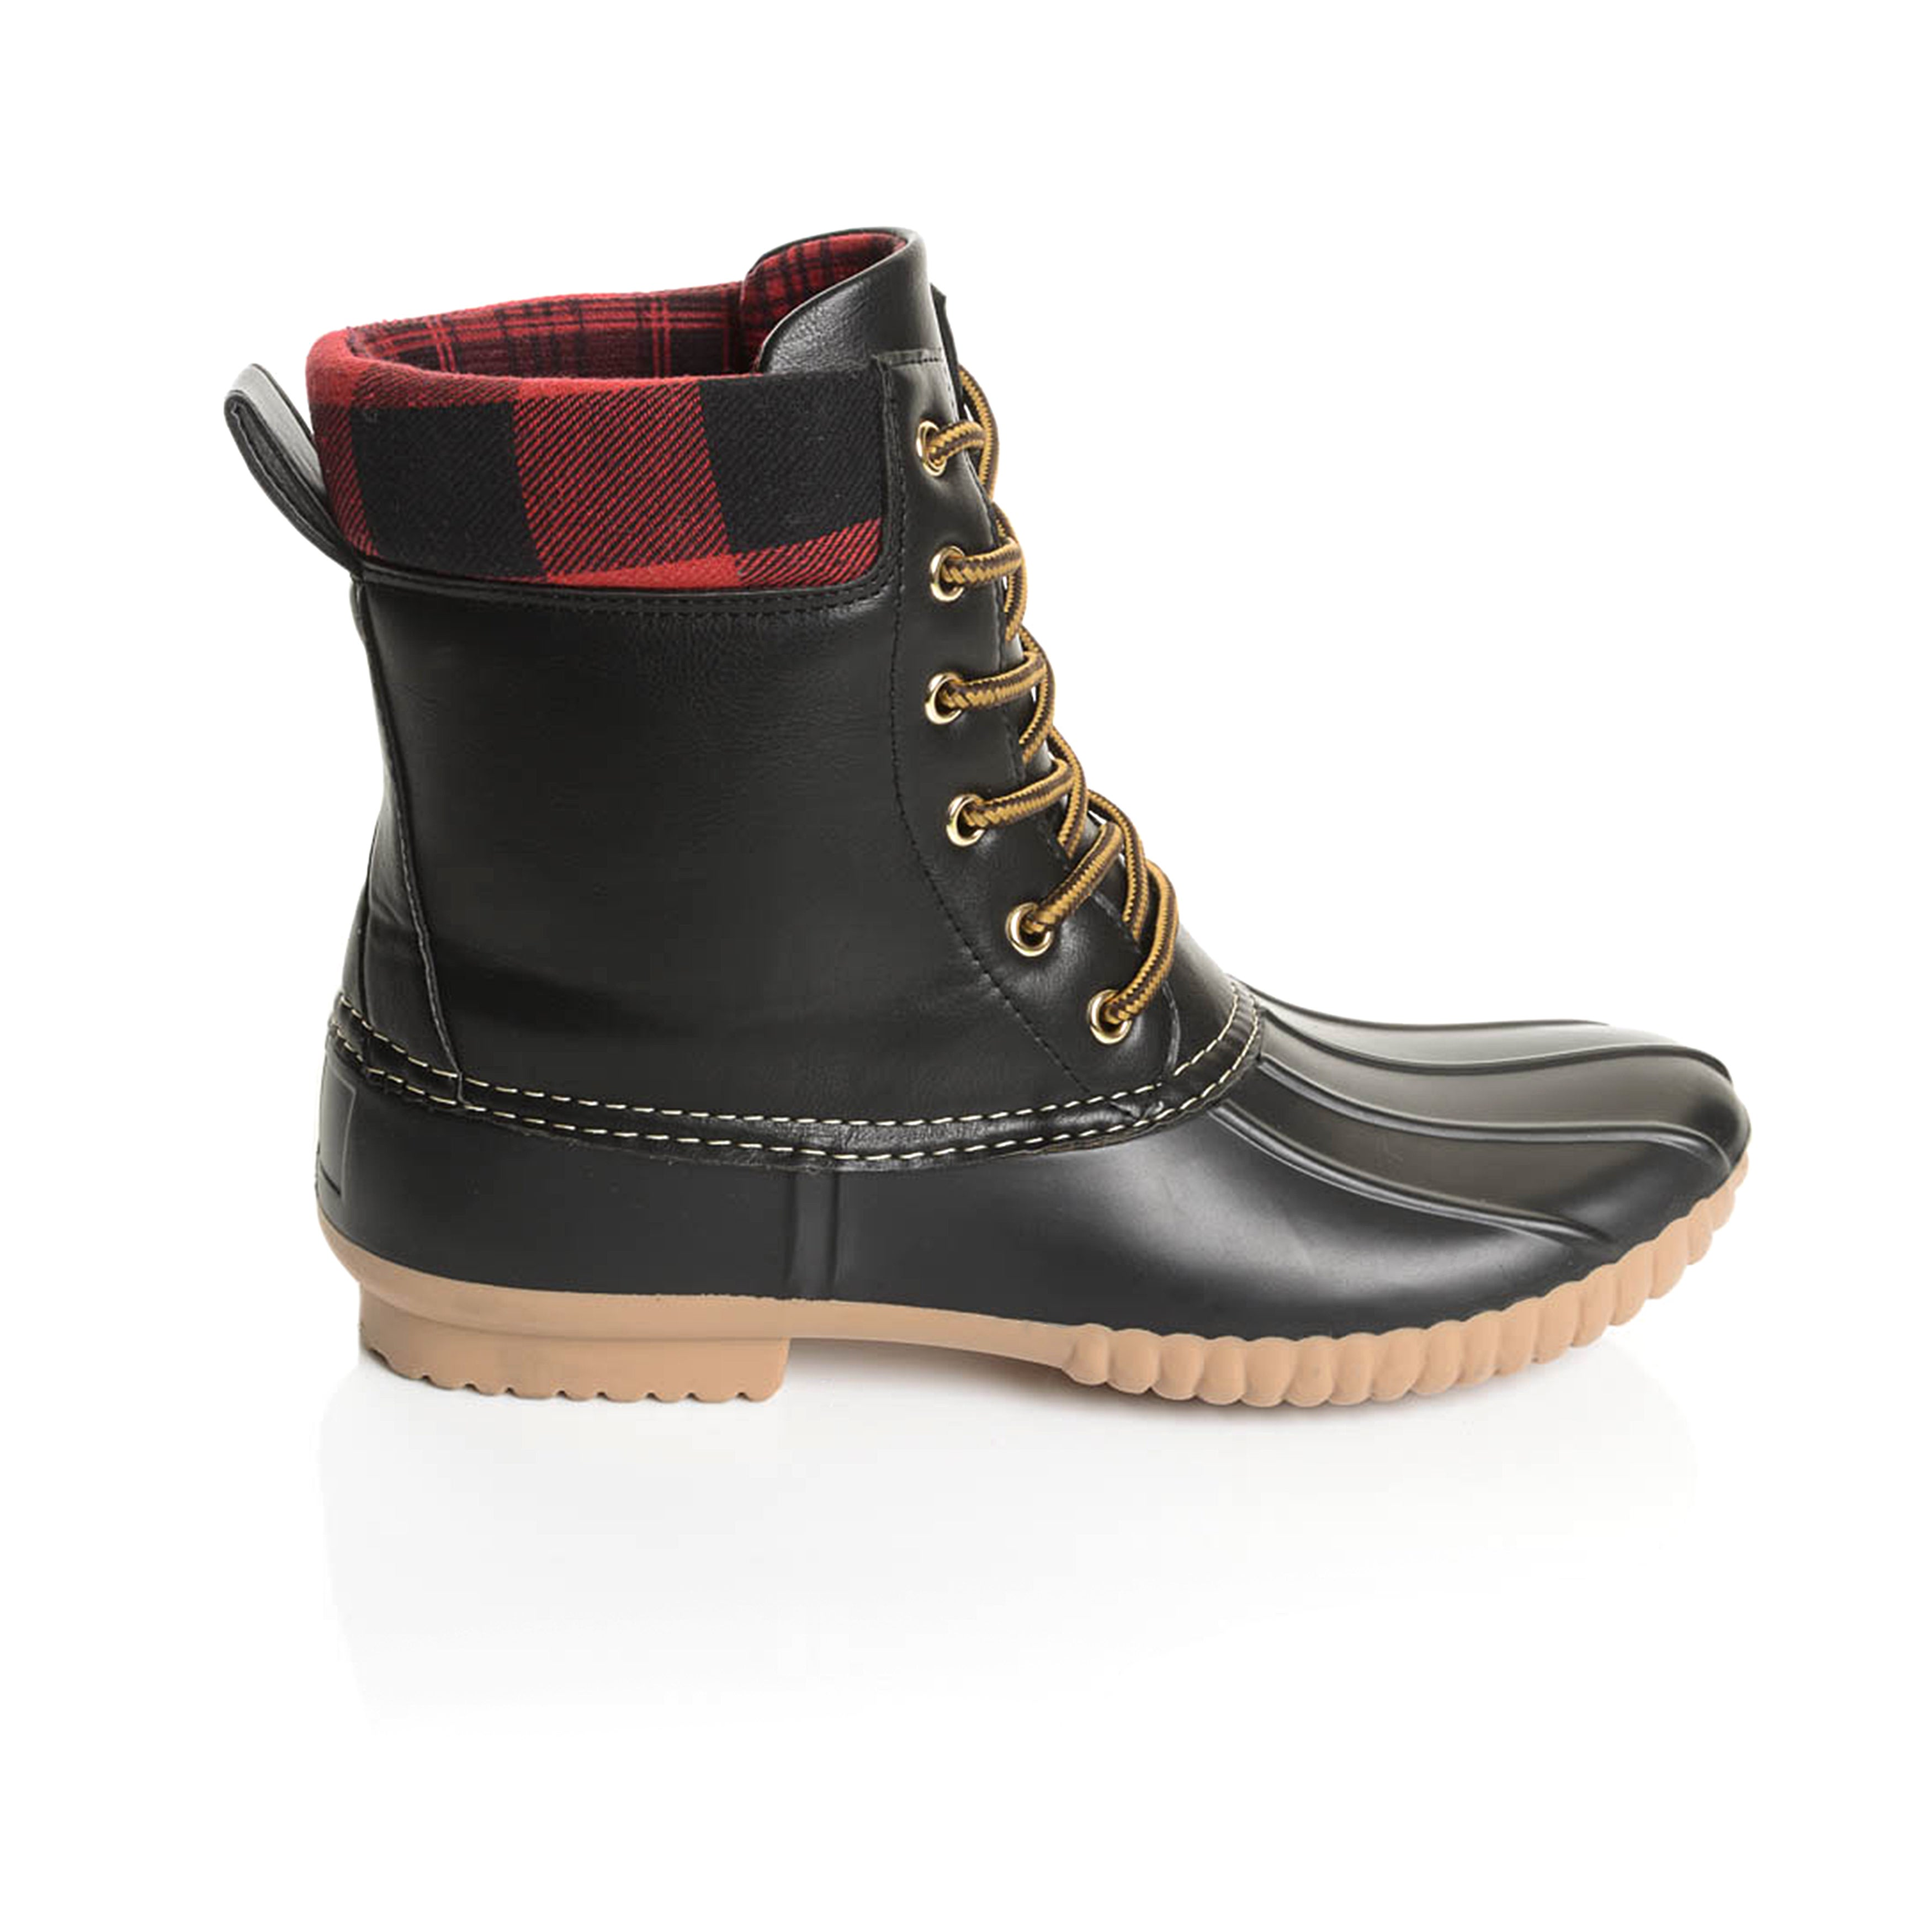 b1104be2d7272a Shop Solo Men s Black Rubber Plaid Collar Duck Boots - Free Shipping Today  - Overstock - 13787124